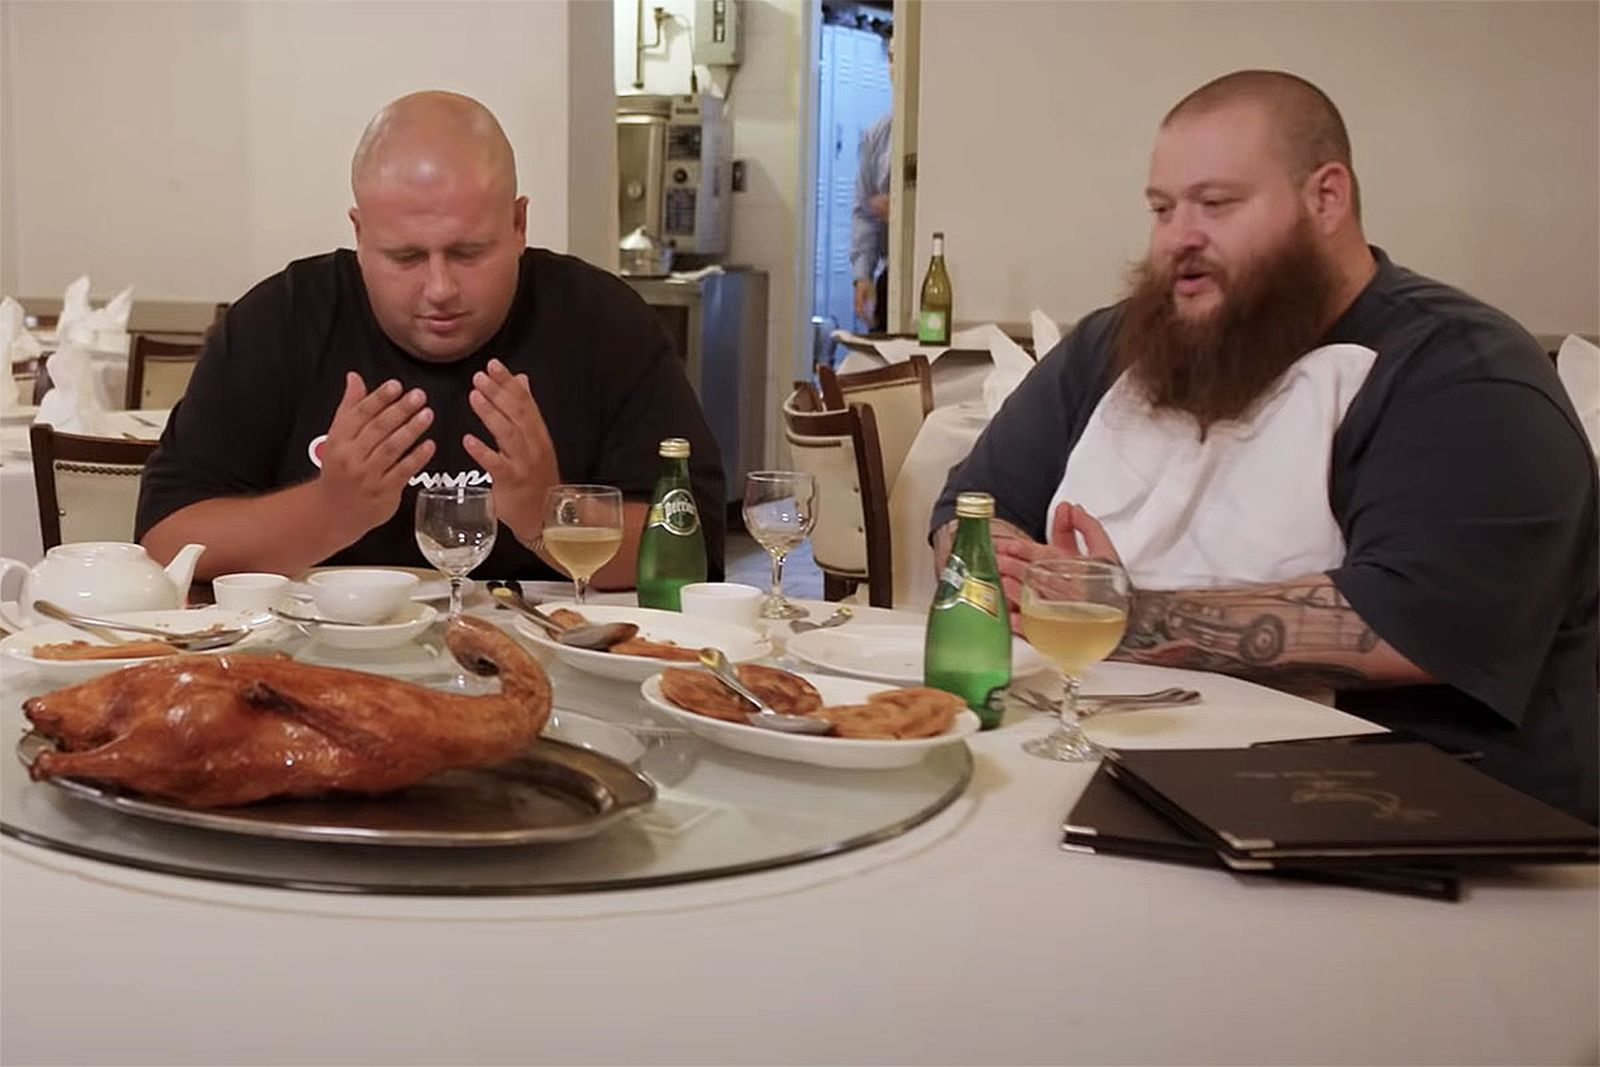 Action Bronson Fuck That's Delicious Season 4 trailer